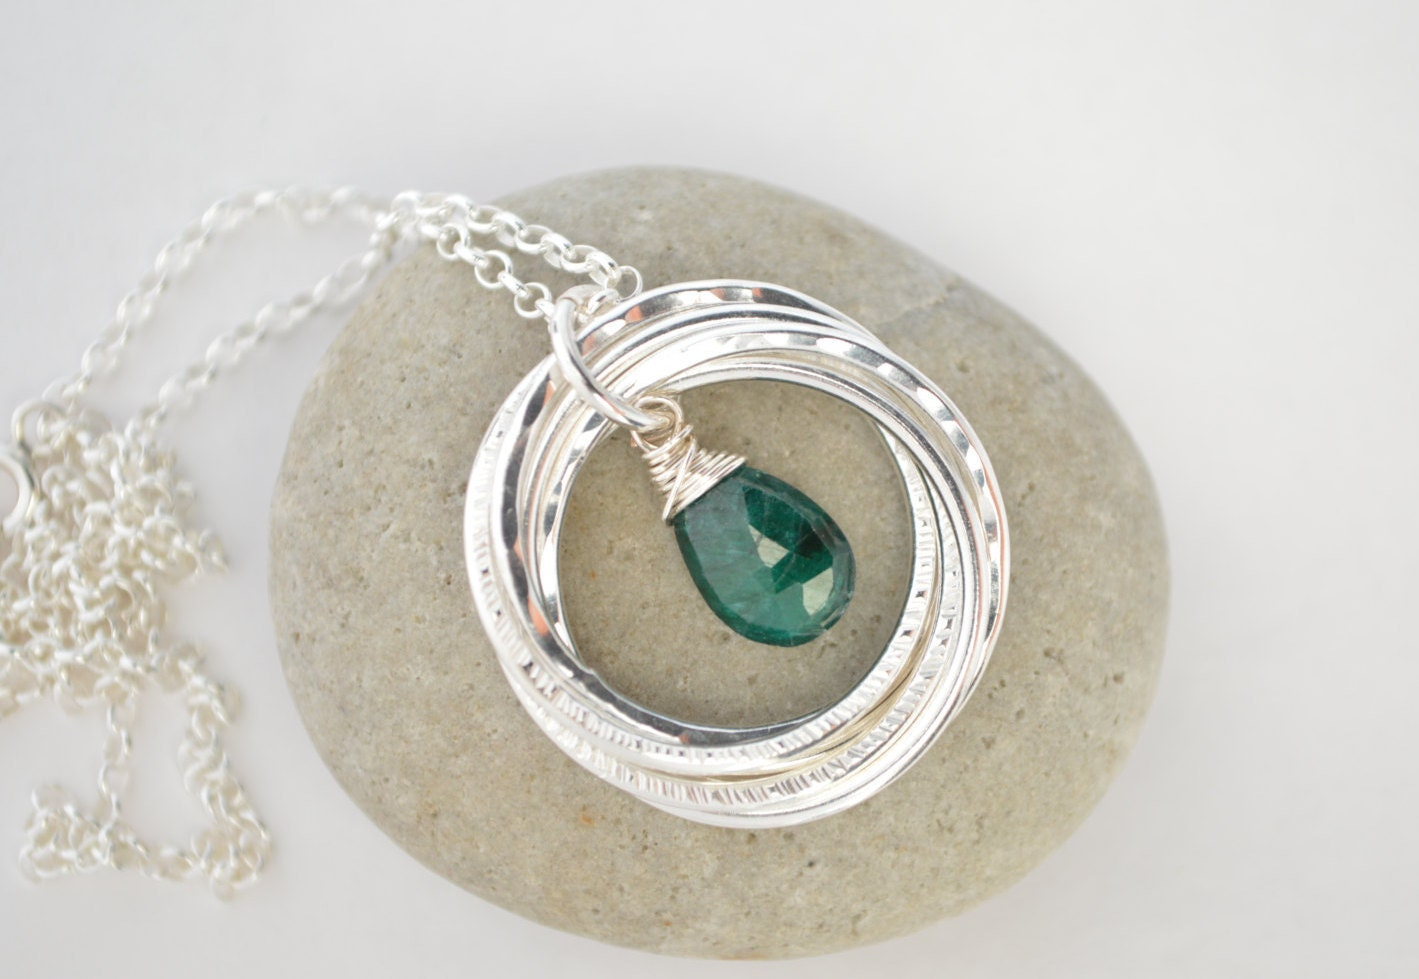 70th Birthday Gift For Mom And Grandma Emerald Birthstone Necklace May 7th Anniversary Wife Gifts